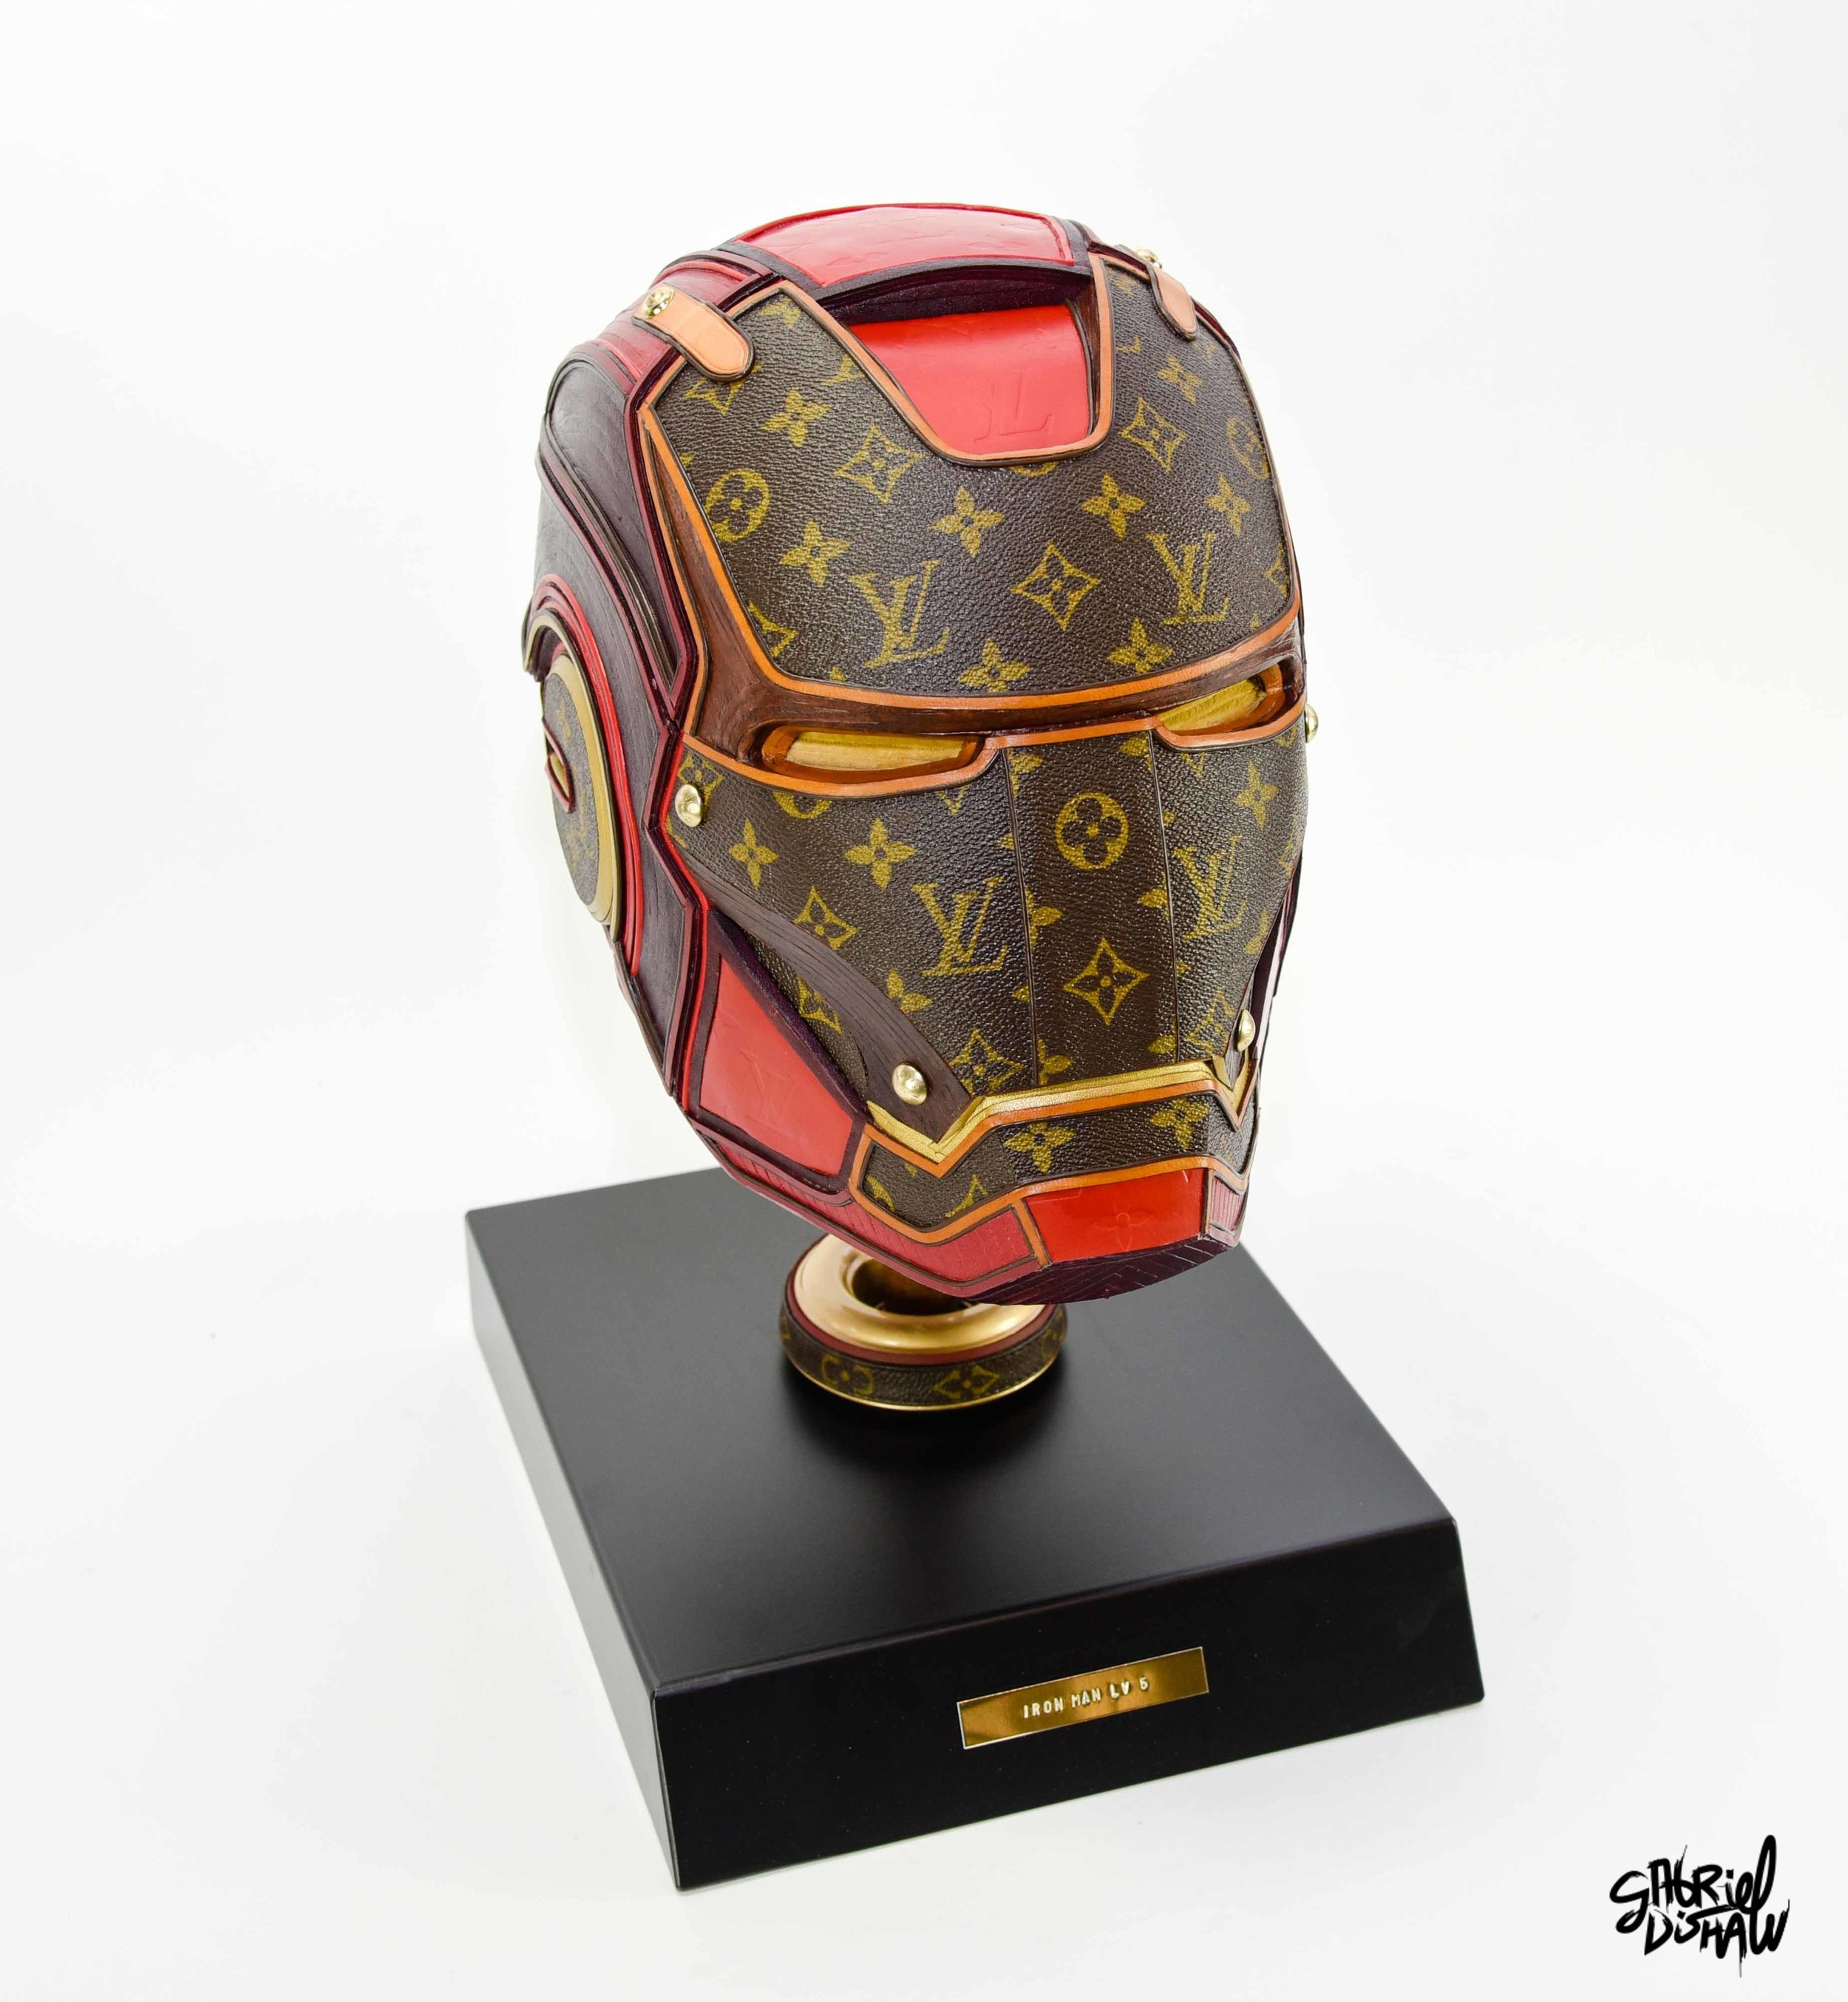 Gabriel Dishaw Iron Man LV Five-0915.jpg